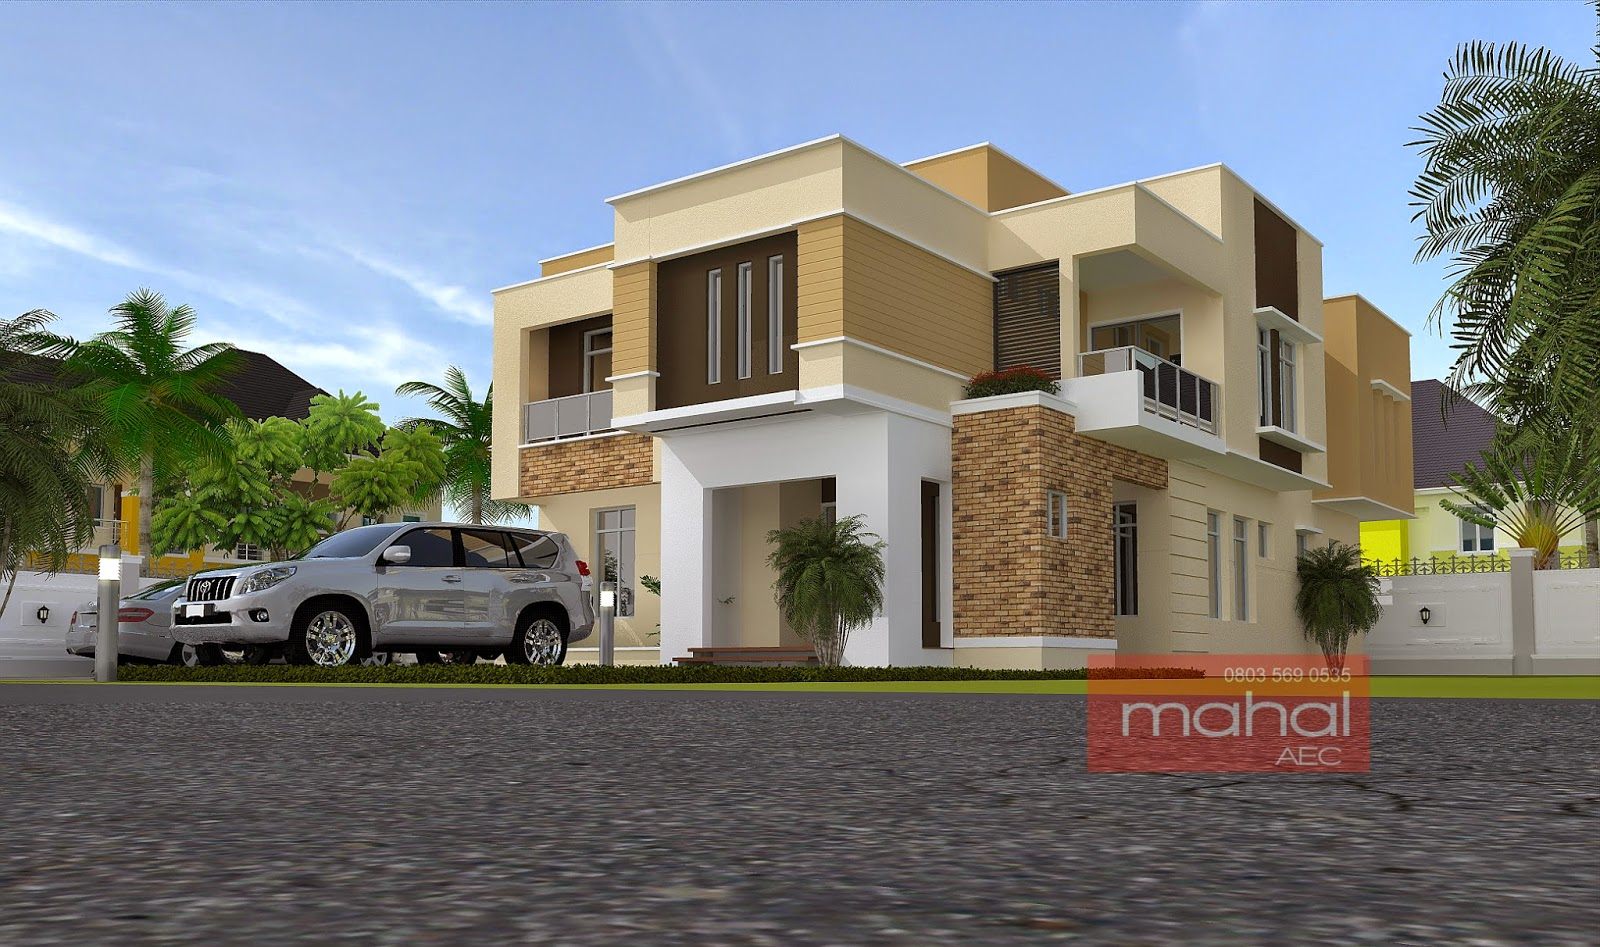 Contemporary nigerian residential architecture b ola house for Nigerian home designs photos